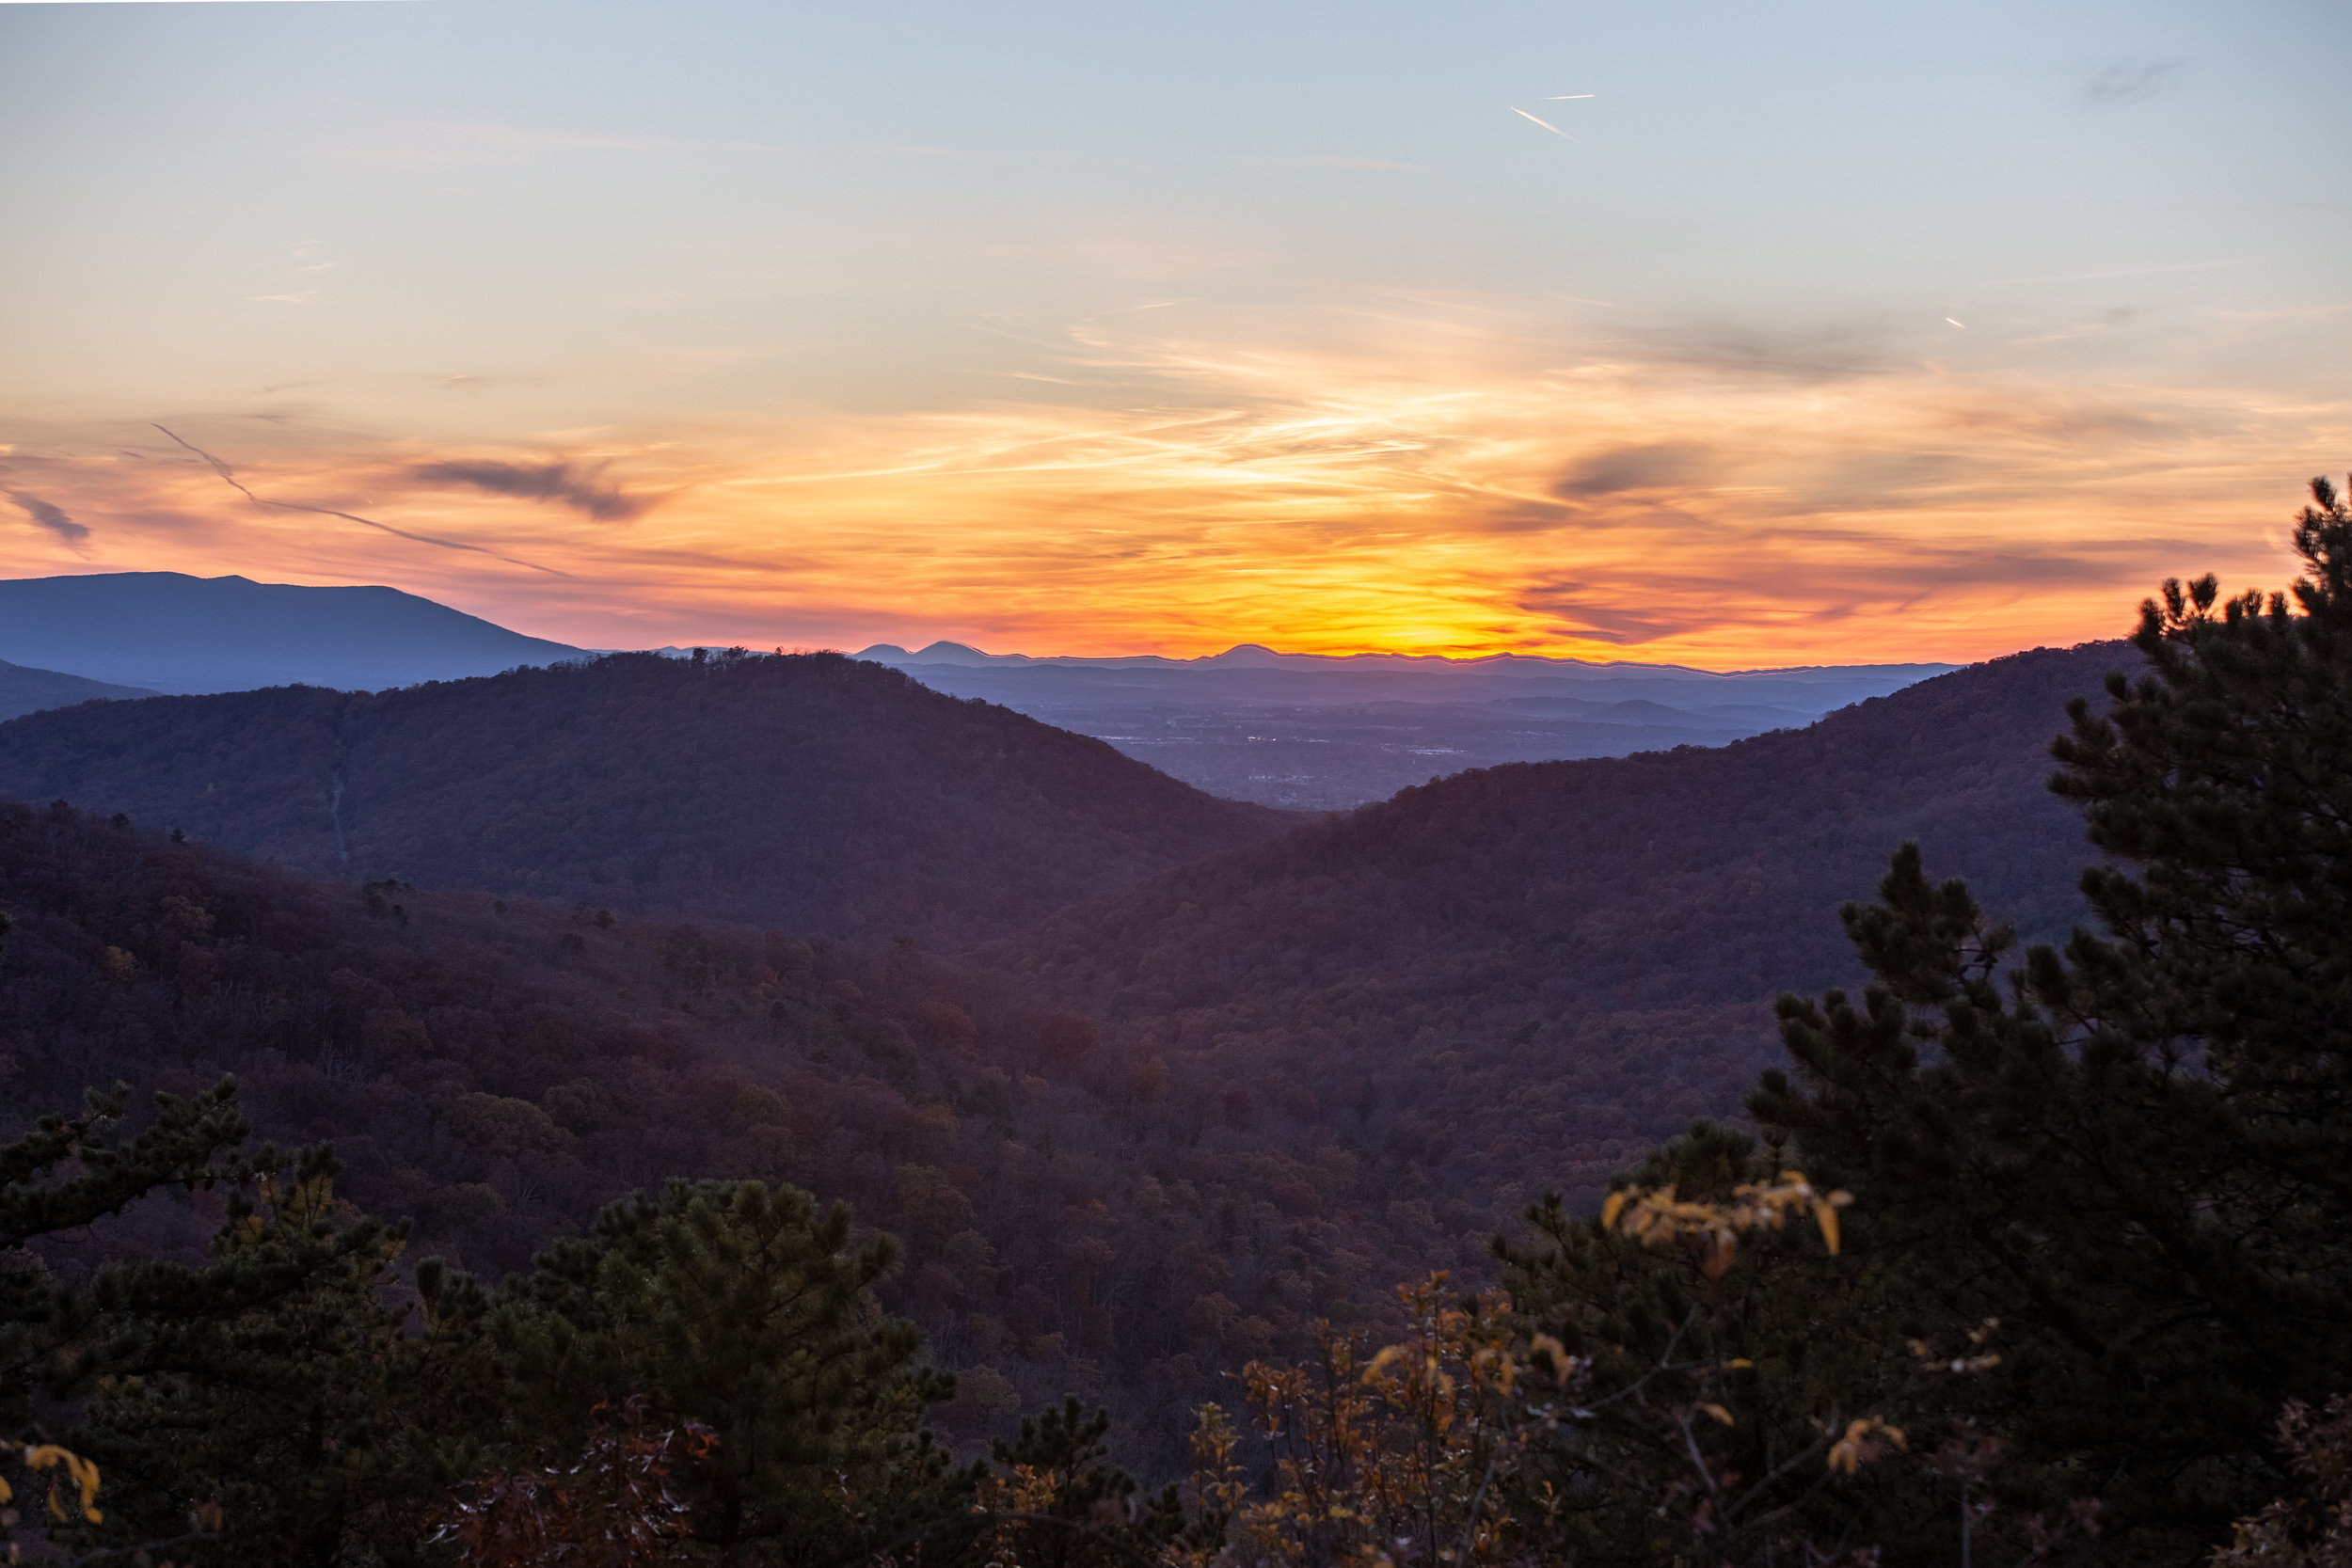 Shenandoah-National-Park-blue-ridge-parkway-day-mountains-afternoon-haze-layers-distance-texture-trees-fall-sunset-evening-HDR-Dark-Orange-blue-red